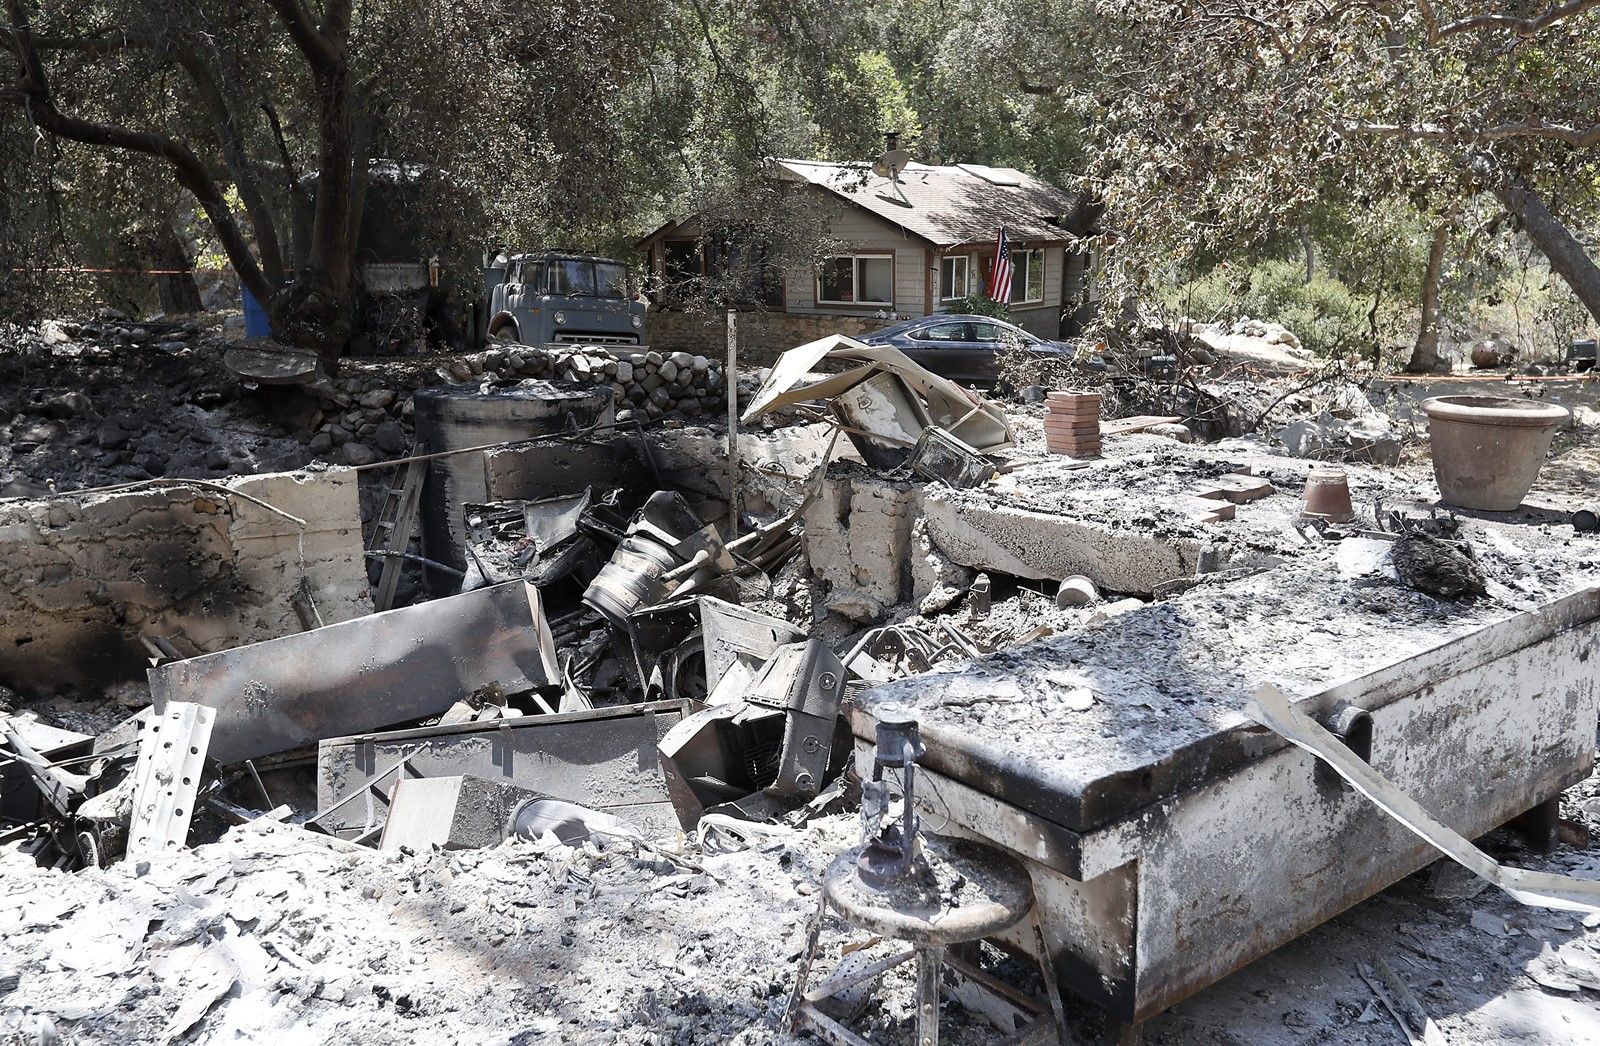 The home of a man suspected of arson stands intact amid burned-out houses in Trabuco Canyon. — Photograph: Luis Sinco/Los Angeles Times.